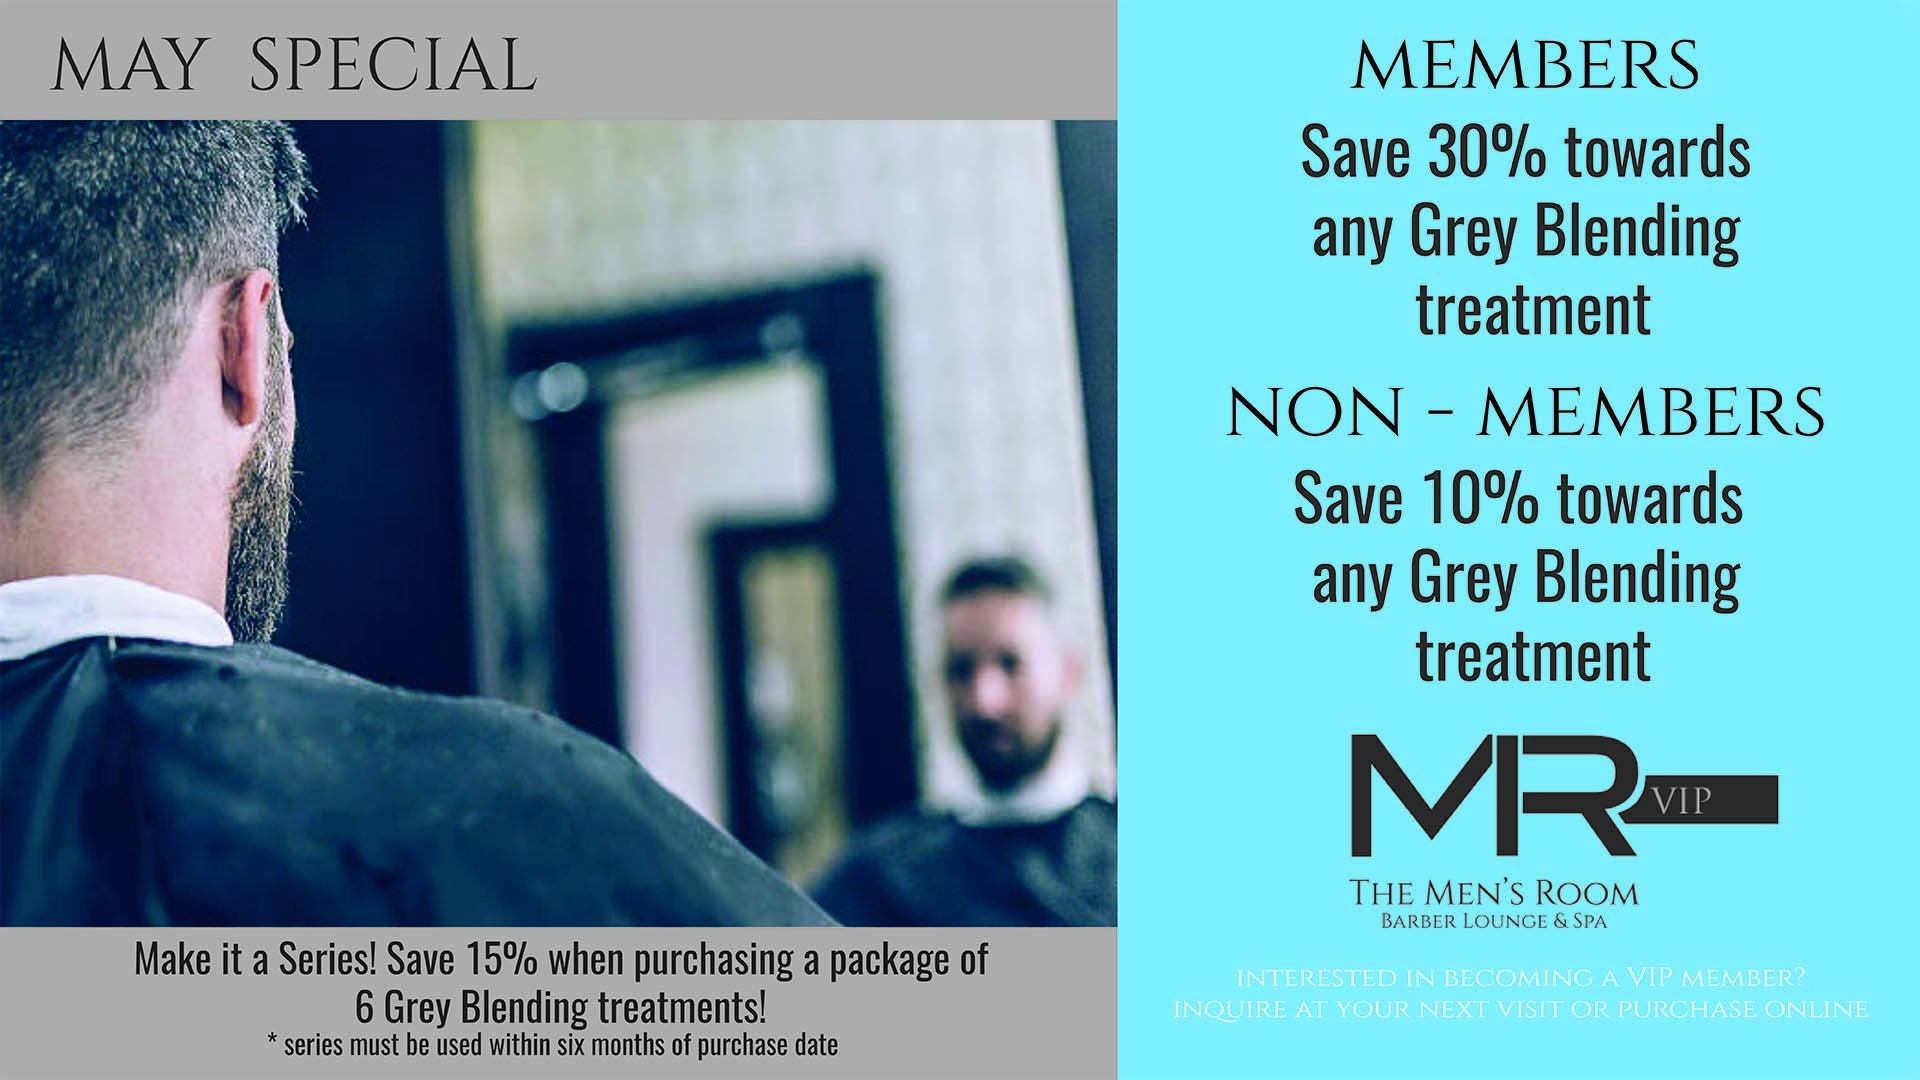 The Men's Room Barber, Lounge, & Spa - May Special